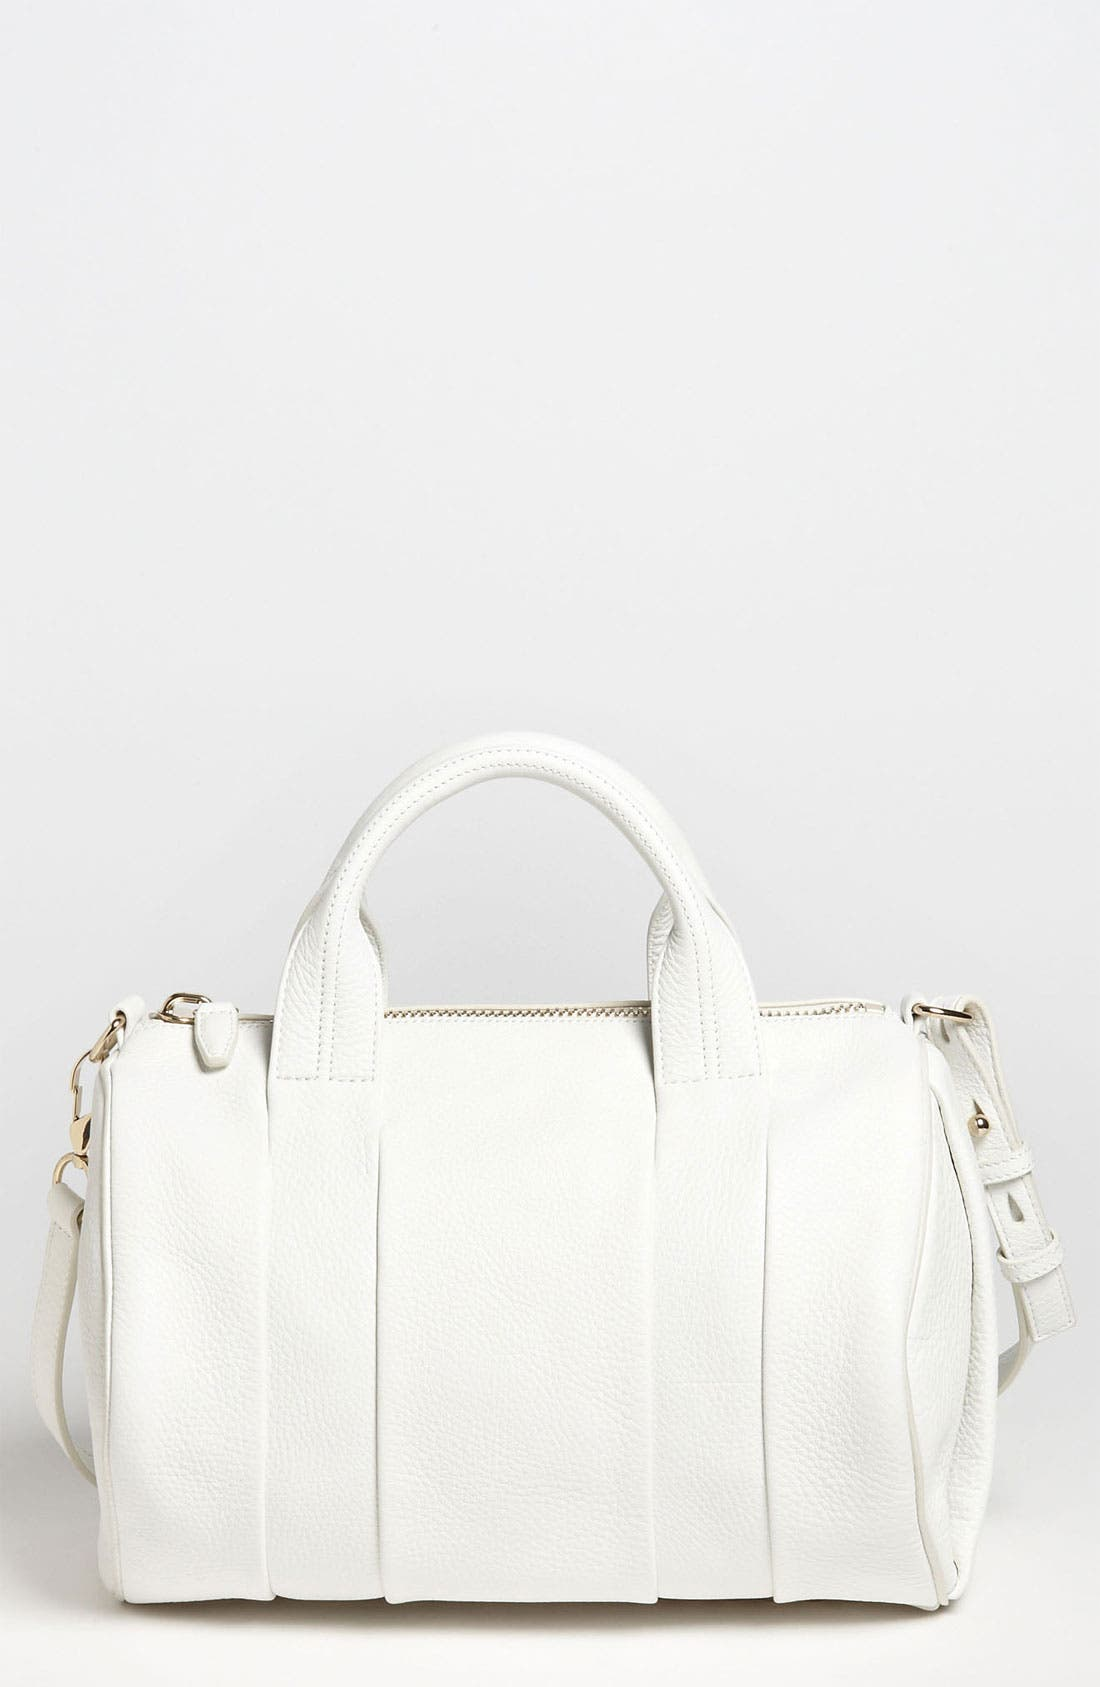 Alternate Image 1 Selected - Alexander Wang 'Rocco - Pale Gold' Leather Satchel